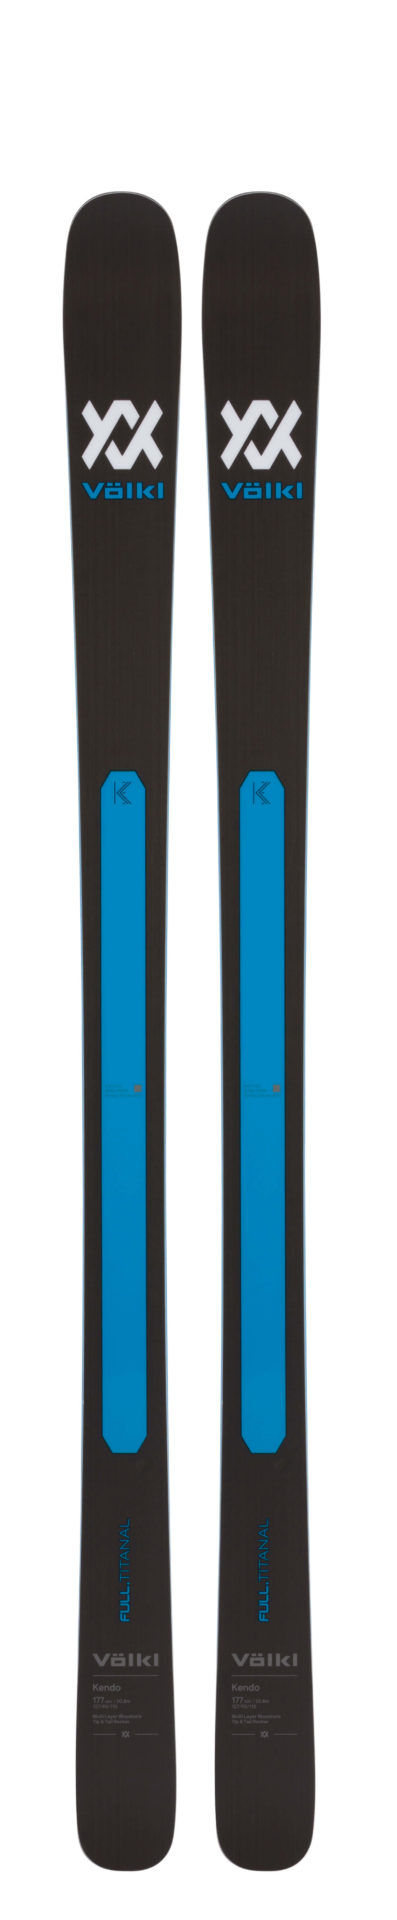 Import placeholder for 11672 2019-20 at Northern Ski Works